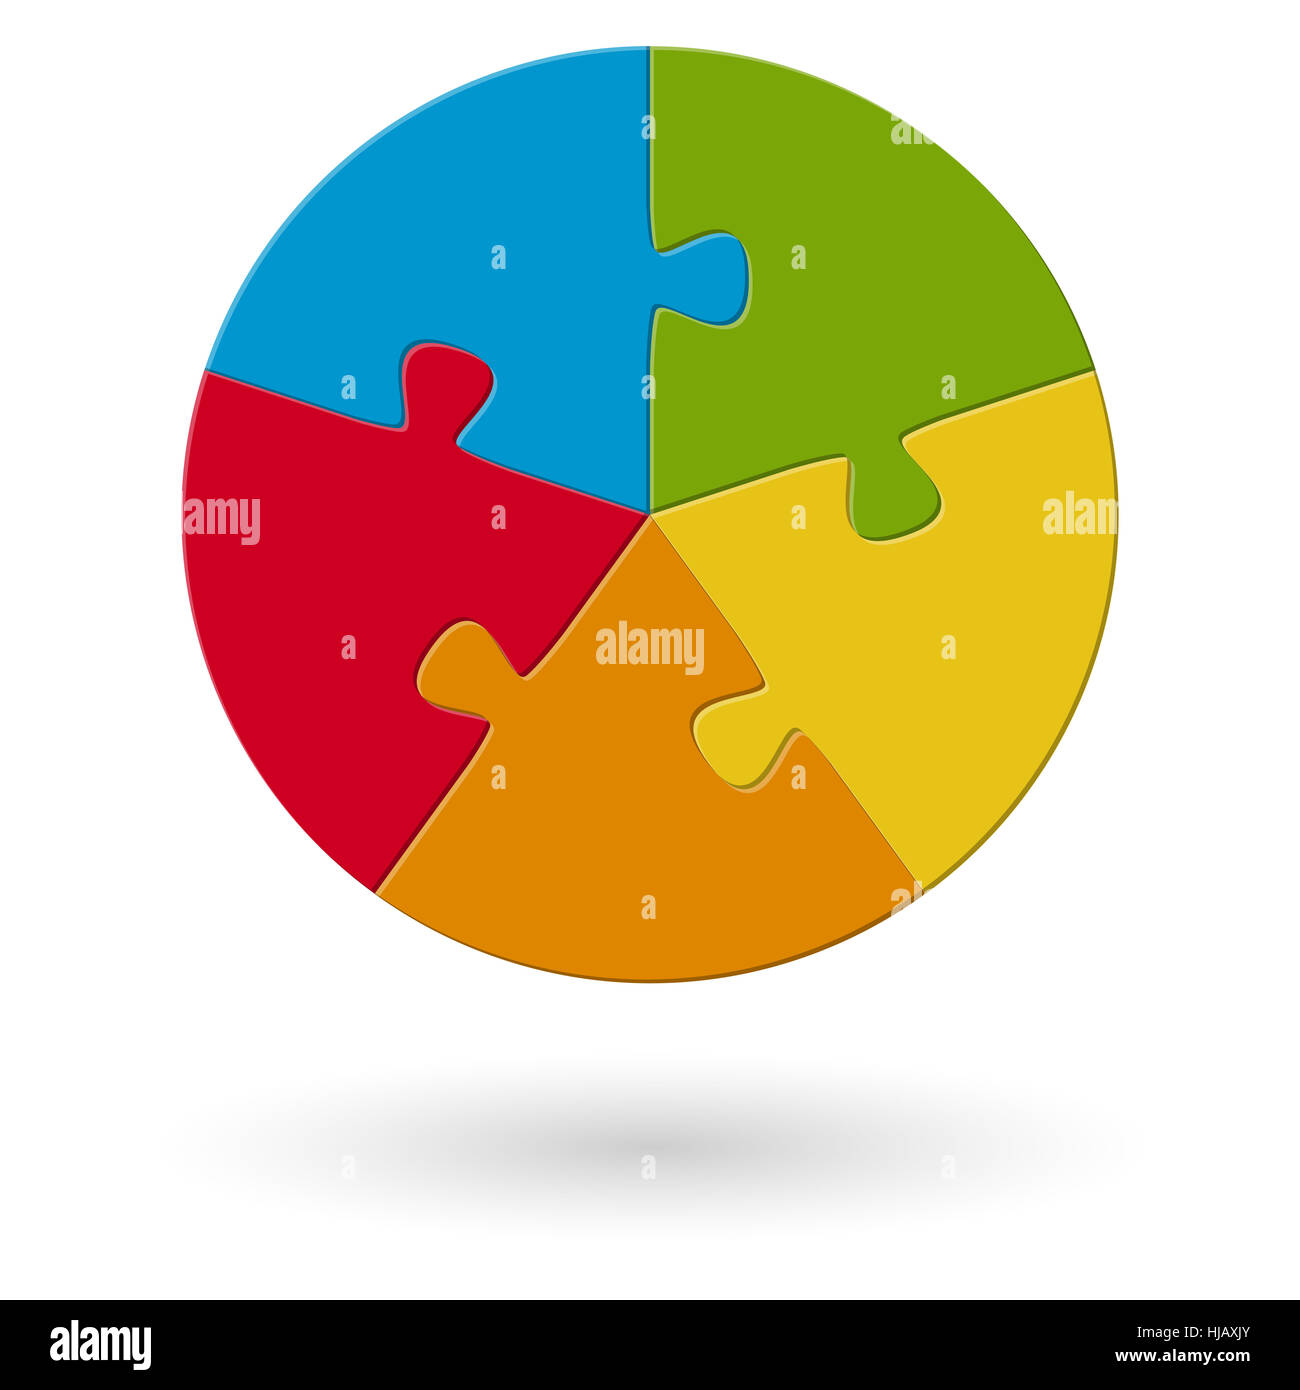 puzzle - approximately - 5 ways - Stock Image